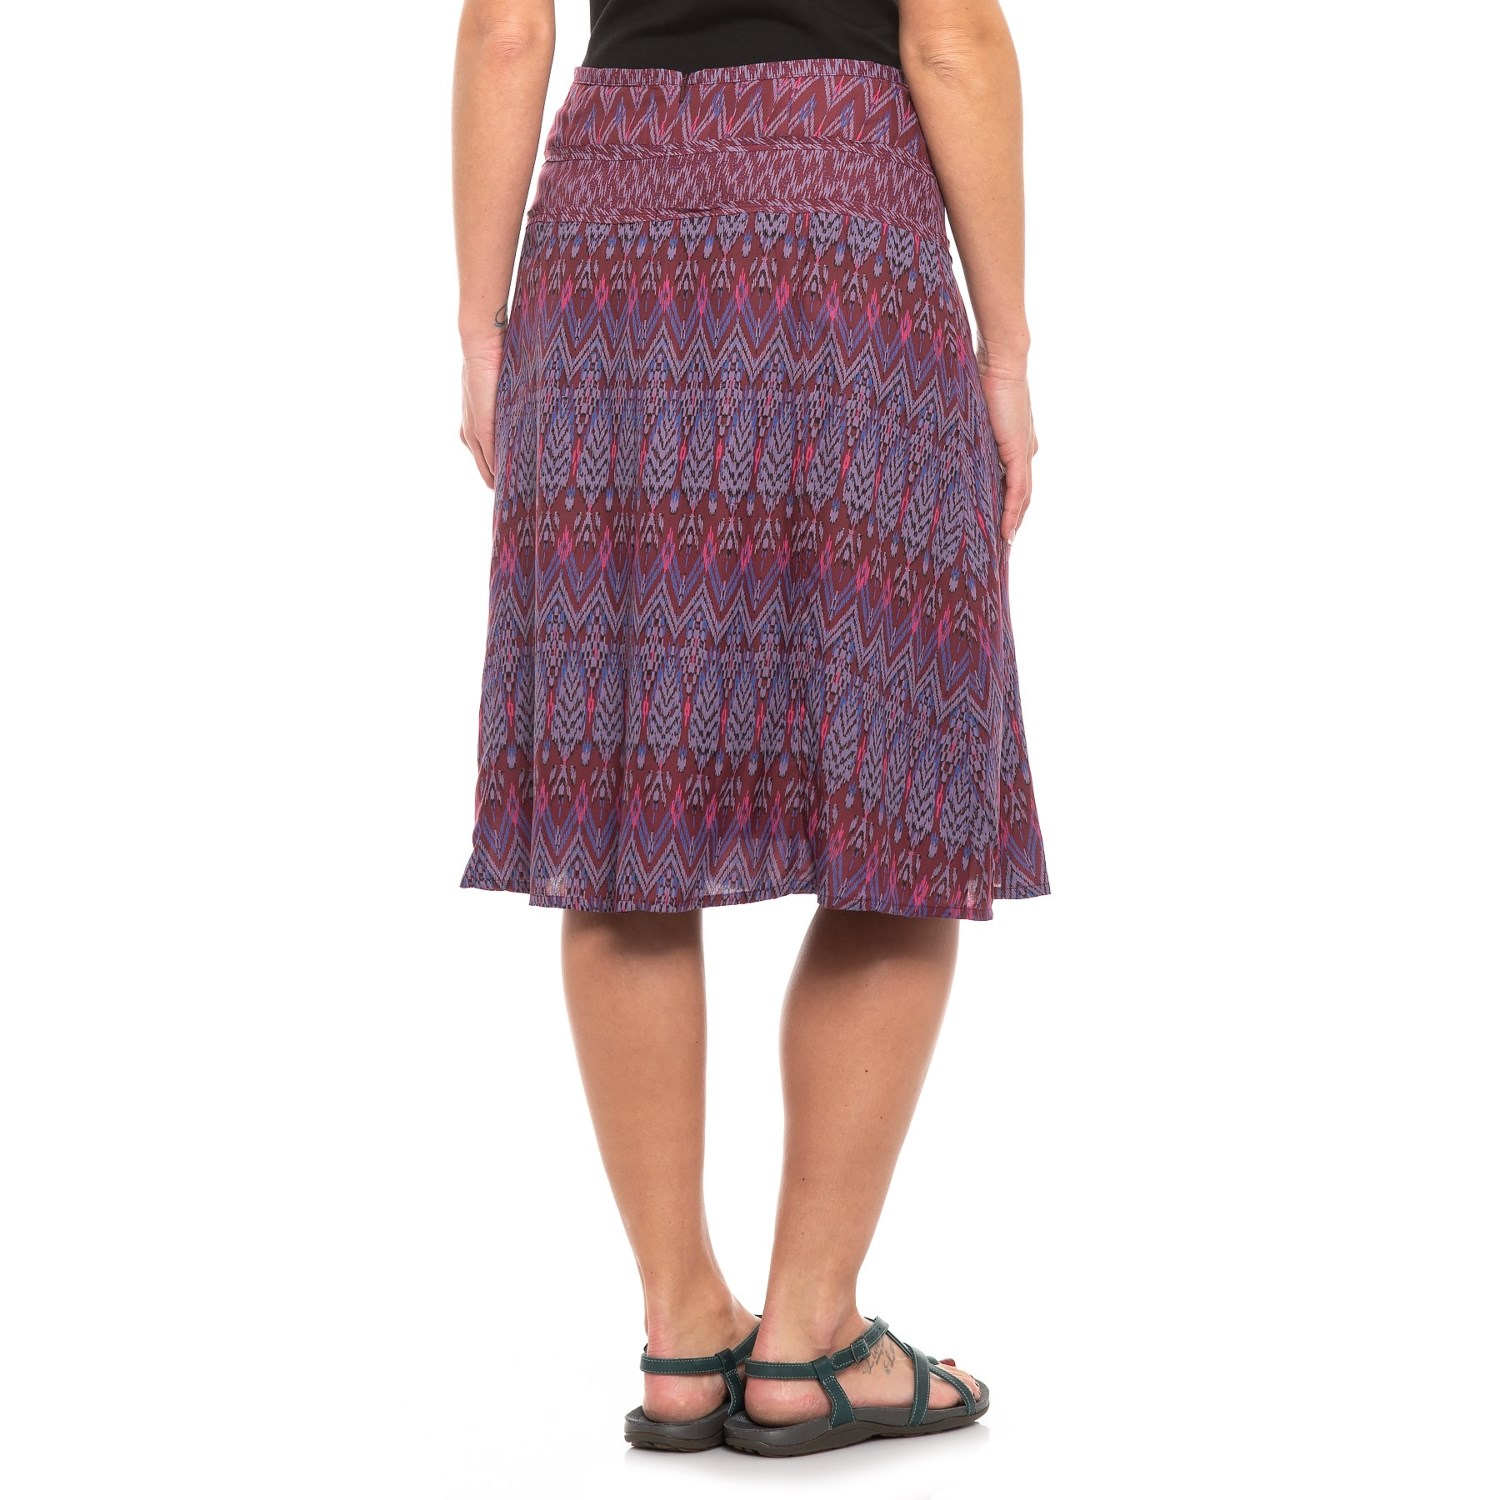 8deb4f32b prAna Black Cherry Laurel Isadora Skirt (For Women) - Save 34%